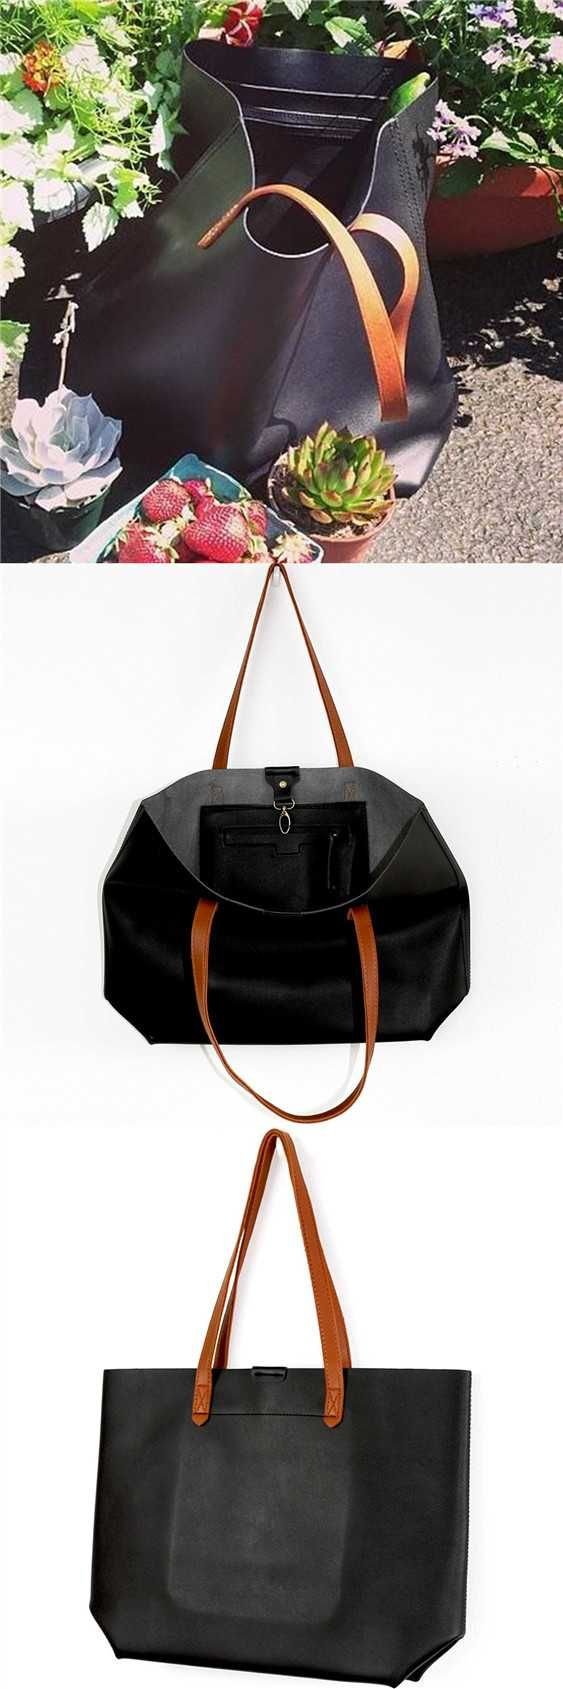 tote bag for school leather totes work bag for travel tote cute shopping bag designer laptop tote bag women|$29.99 Amazon Free Shipping 3 day delivered